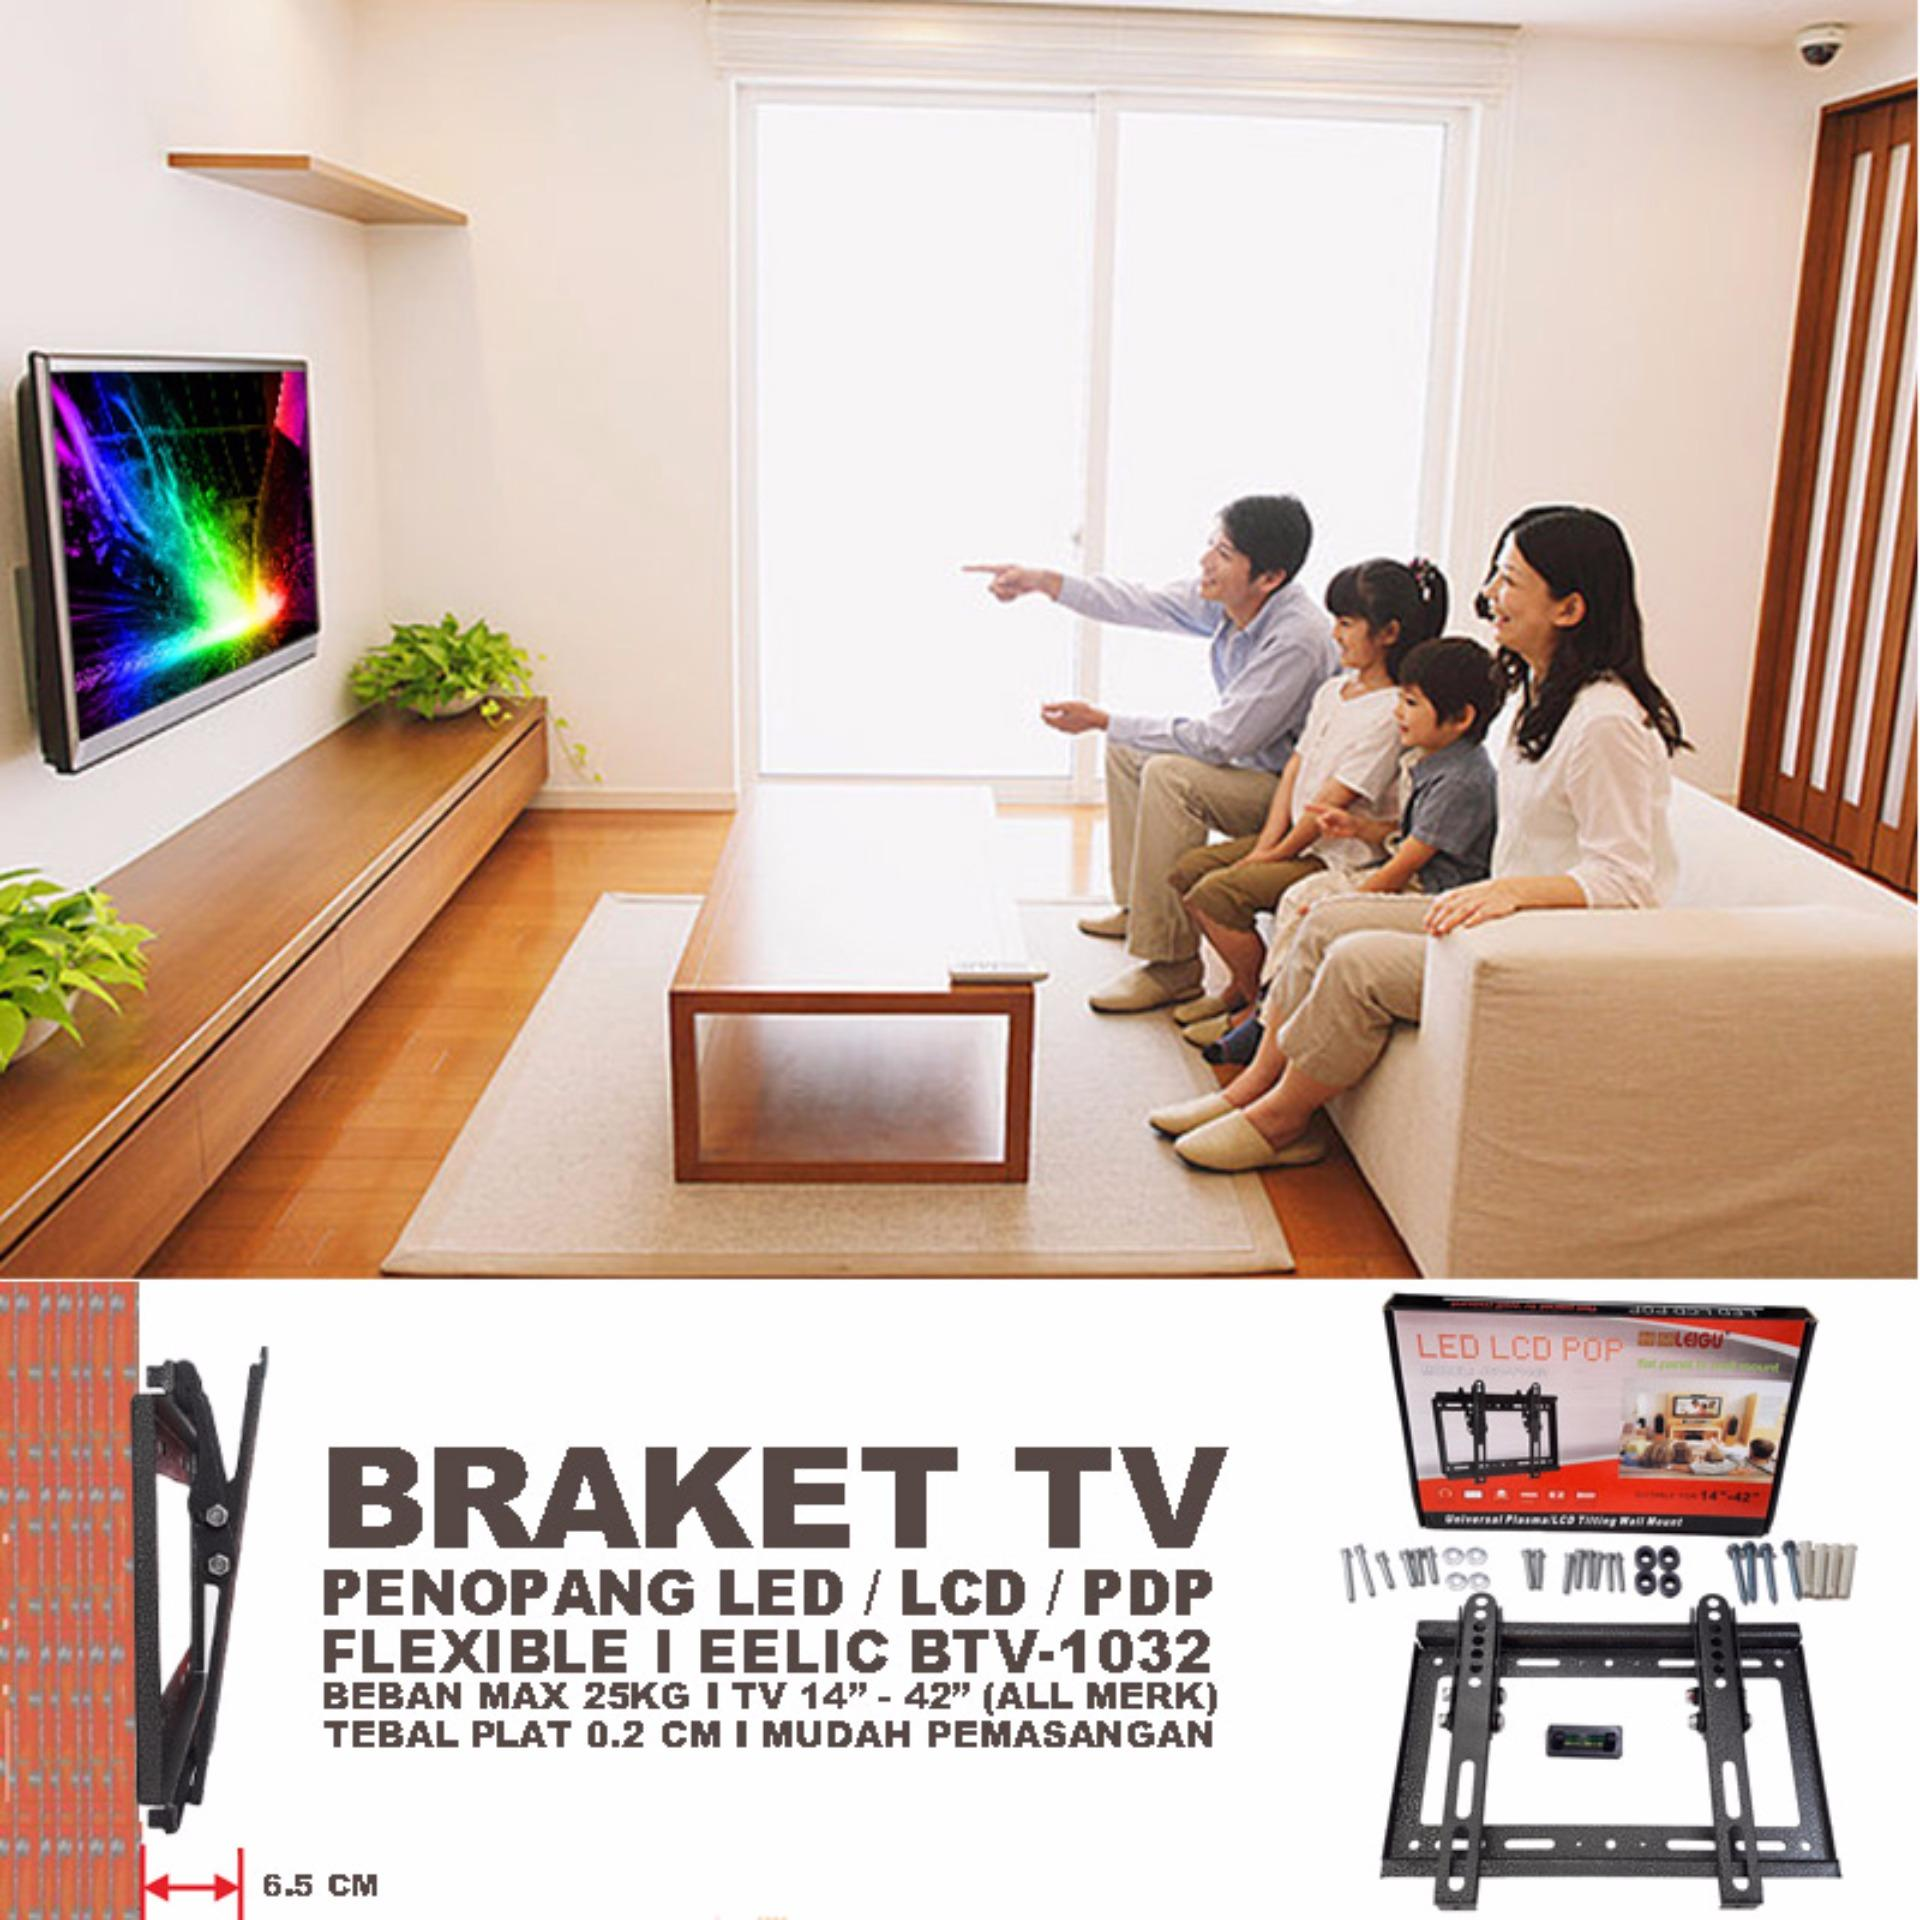 Wall Bracket Braket Breket Tv Universal 24 60 Adjustable With Water Tidy Tdw206sfn Eelic Brt Jd1442 Led 14